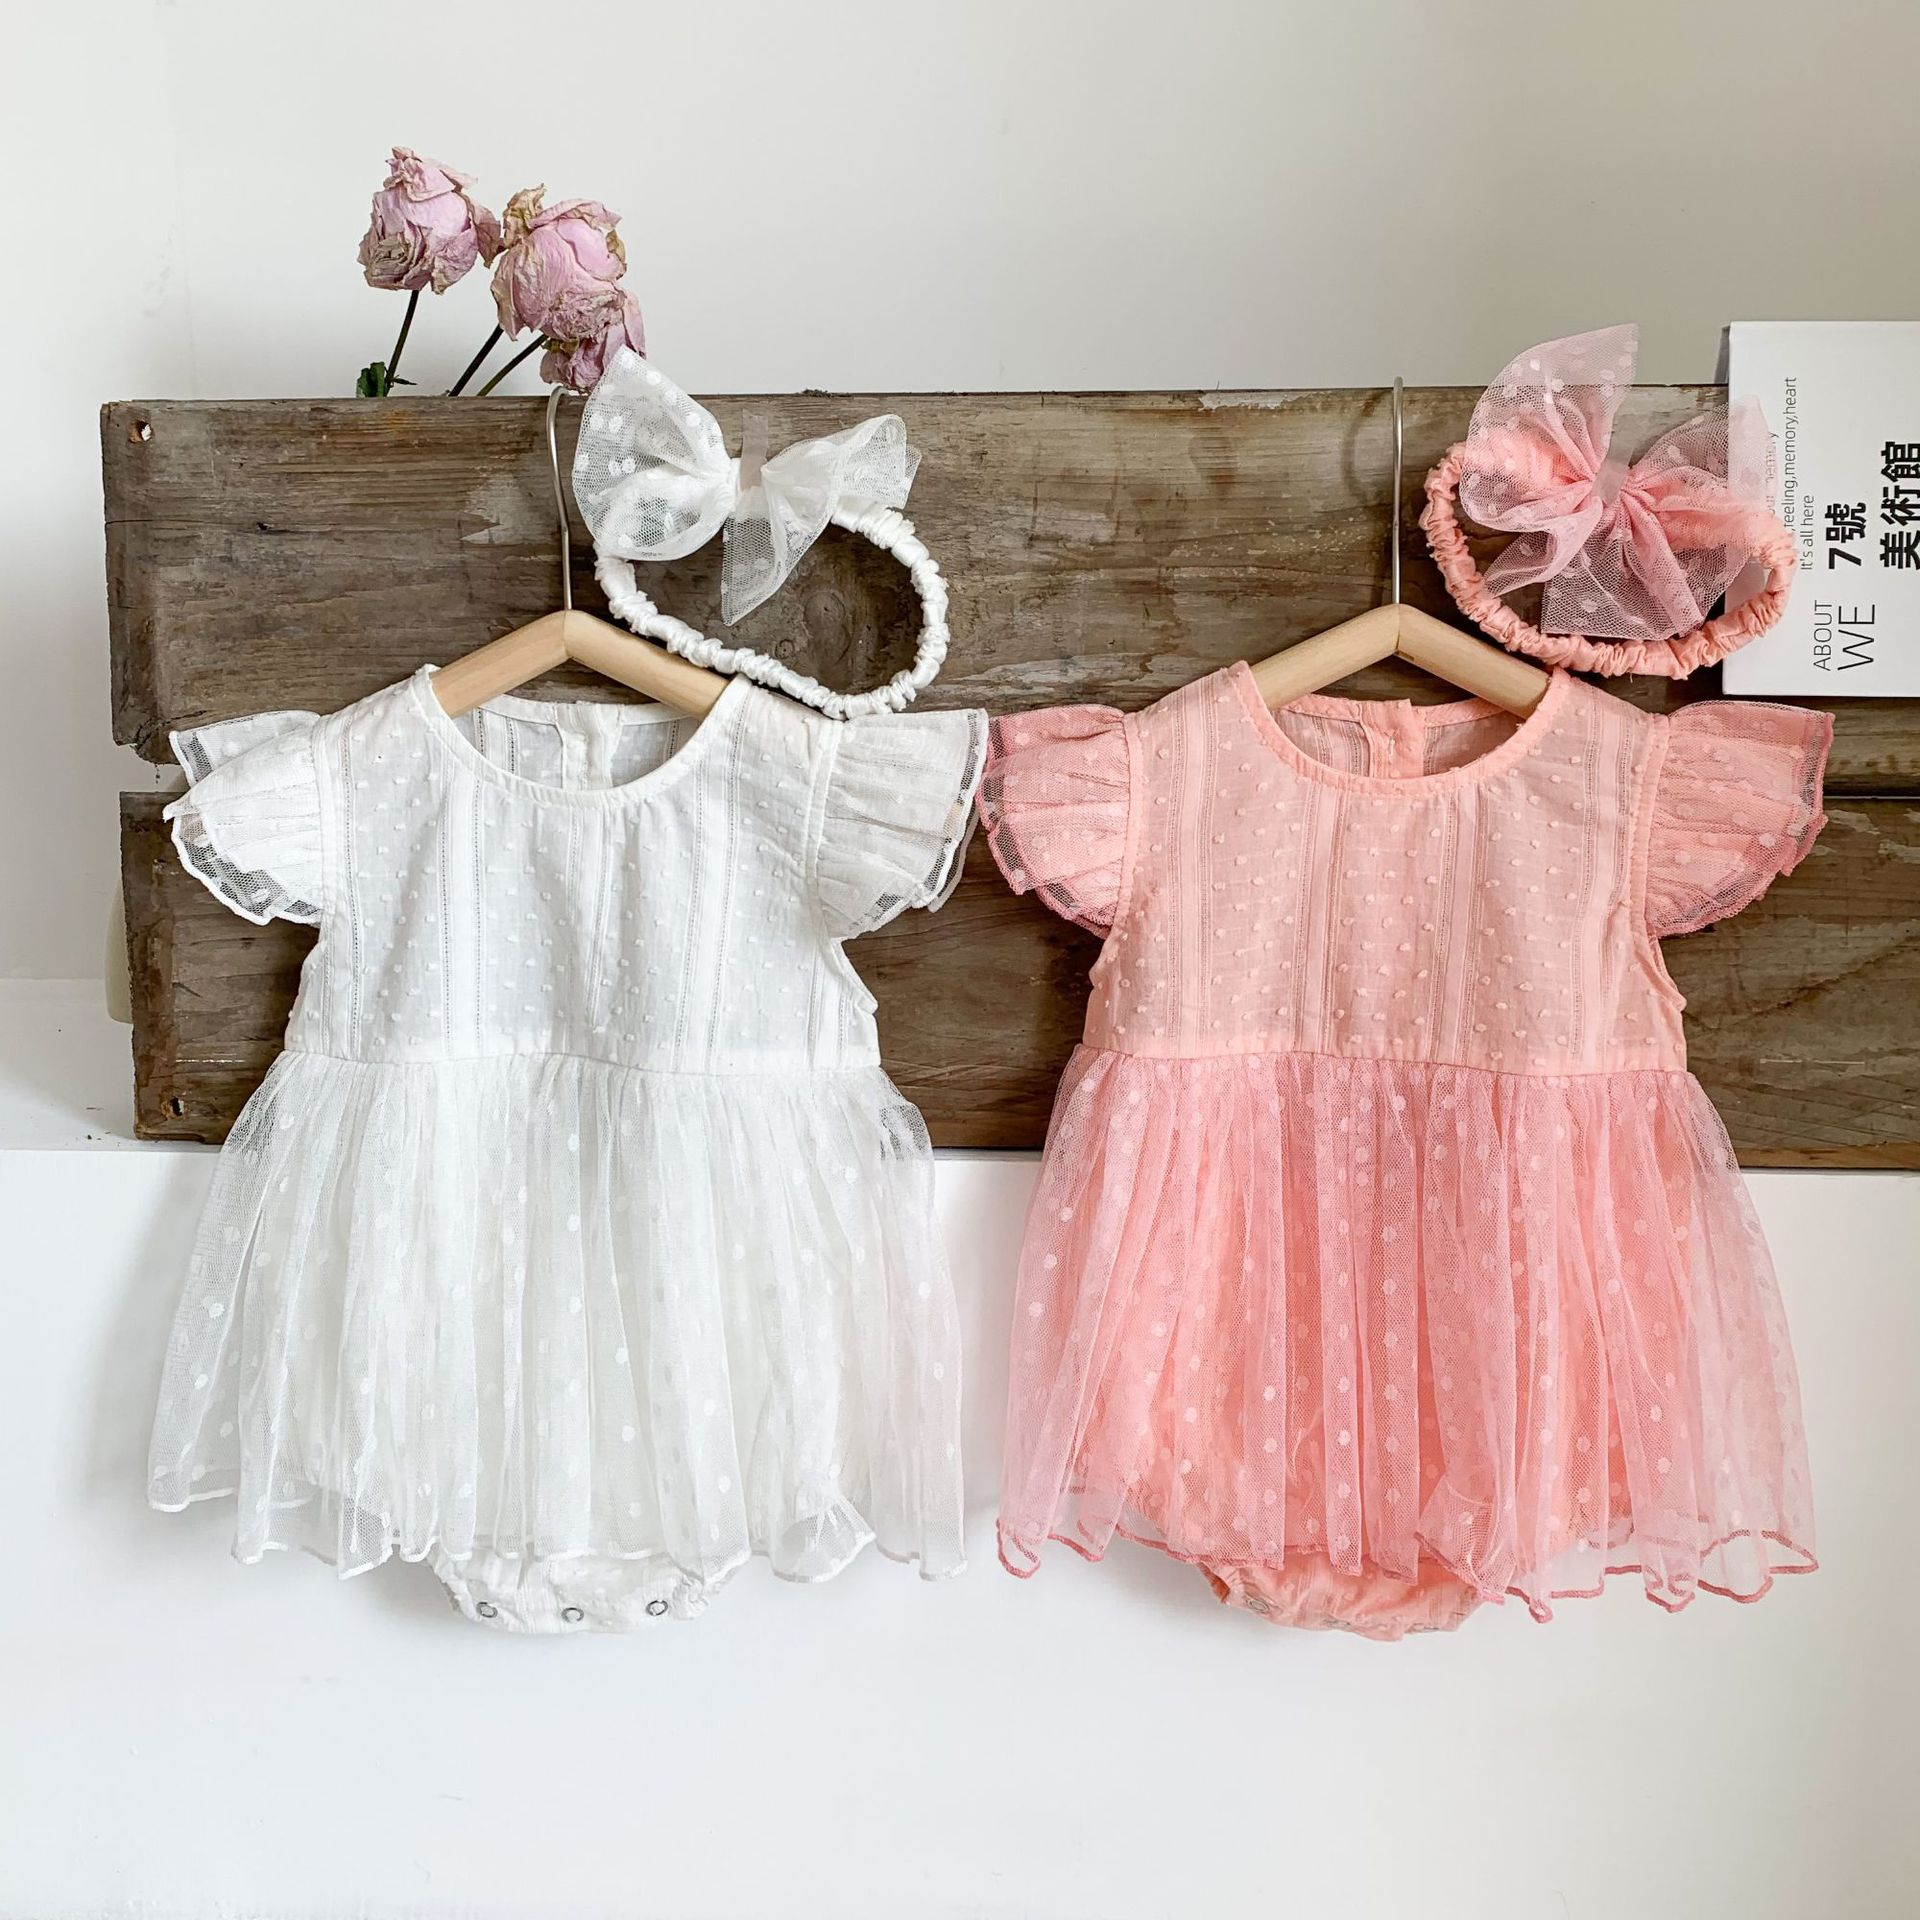 Yg Brand Children's Clothing 2021 Summer Korean Baby Short Sleeve One Piece Hairband Solid Color Mesh Baby Dress